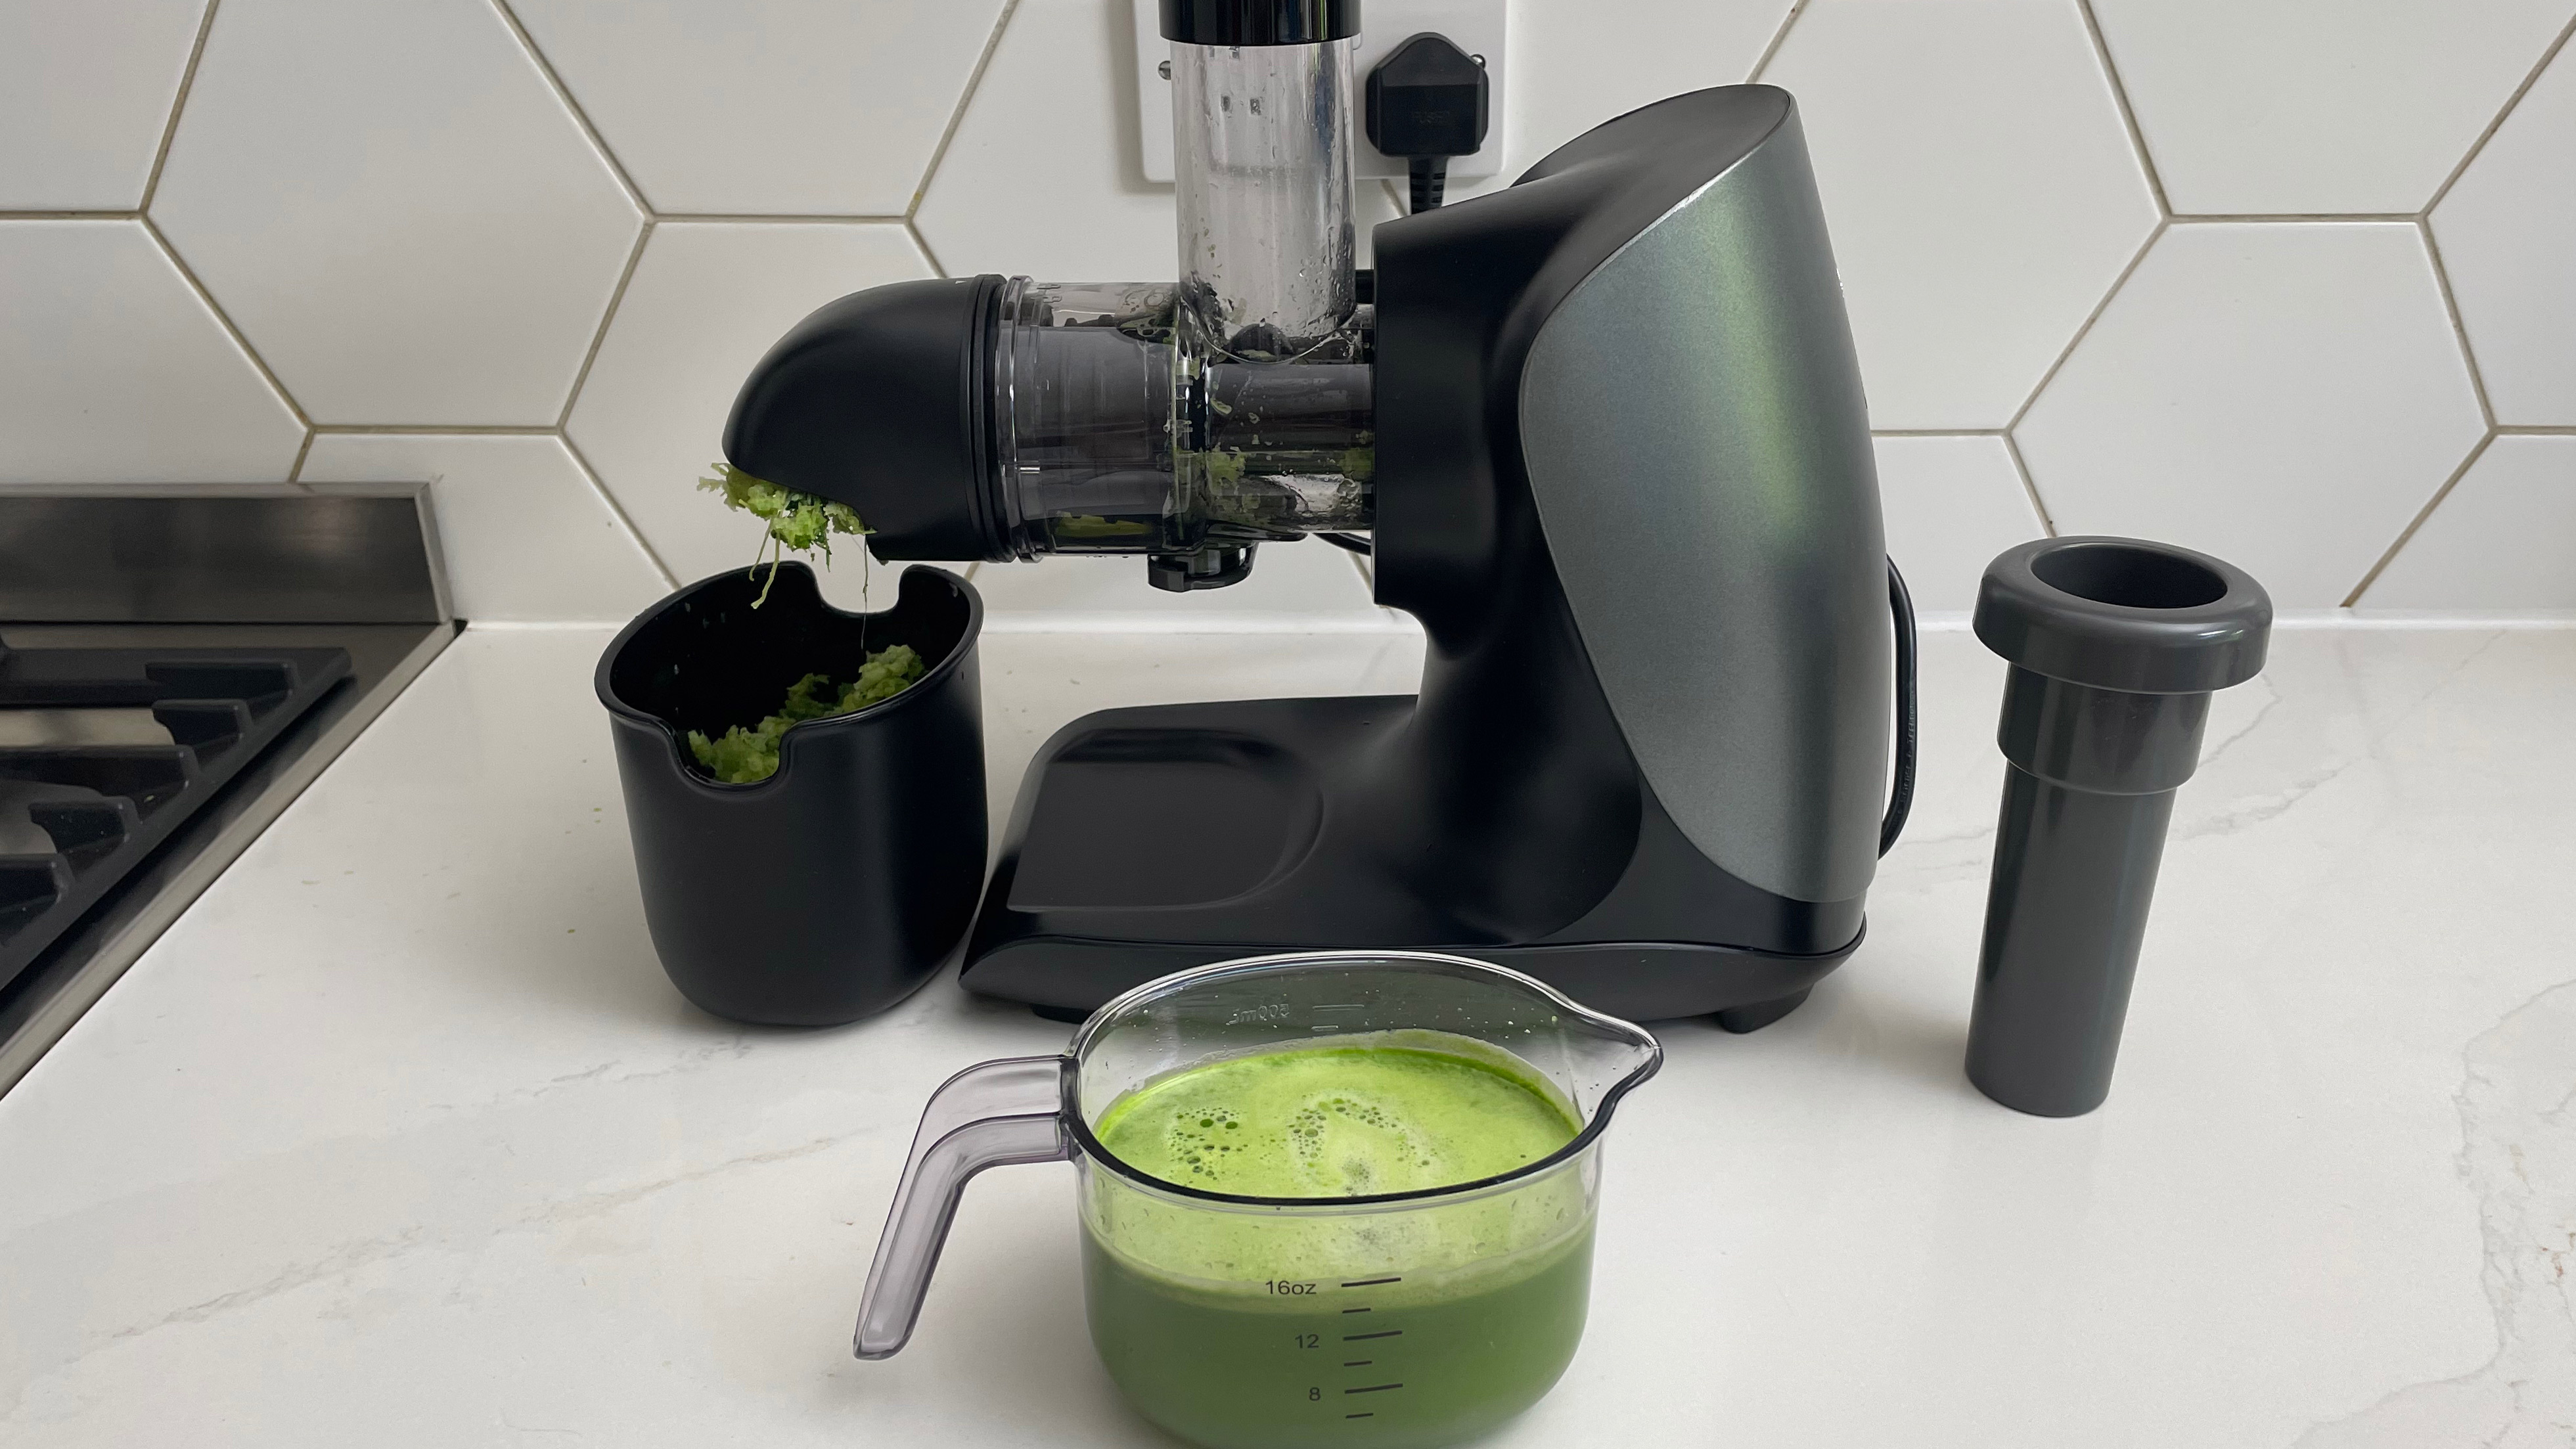 The Ninja Cold Press Juicer, which has been used to juice kale